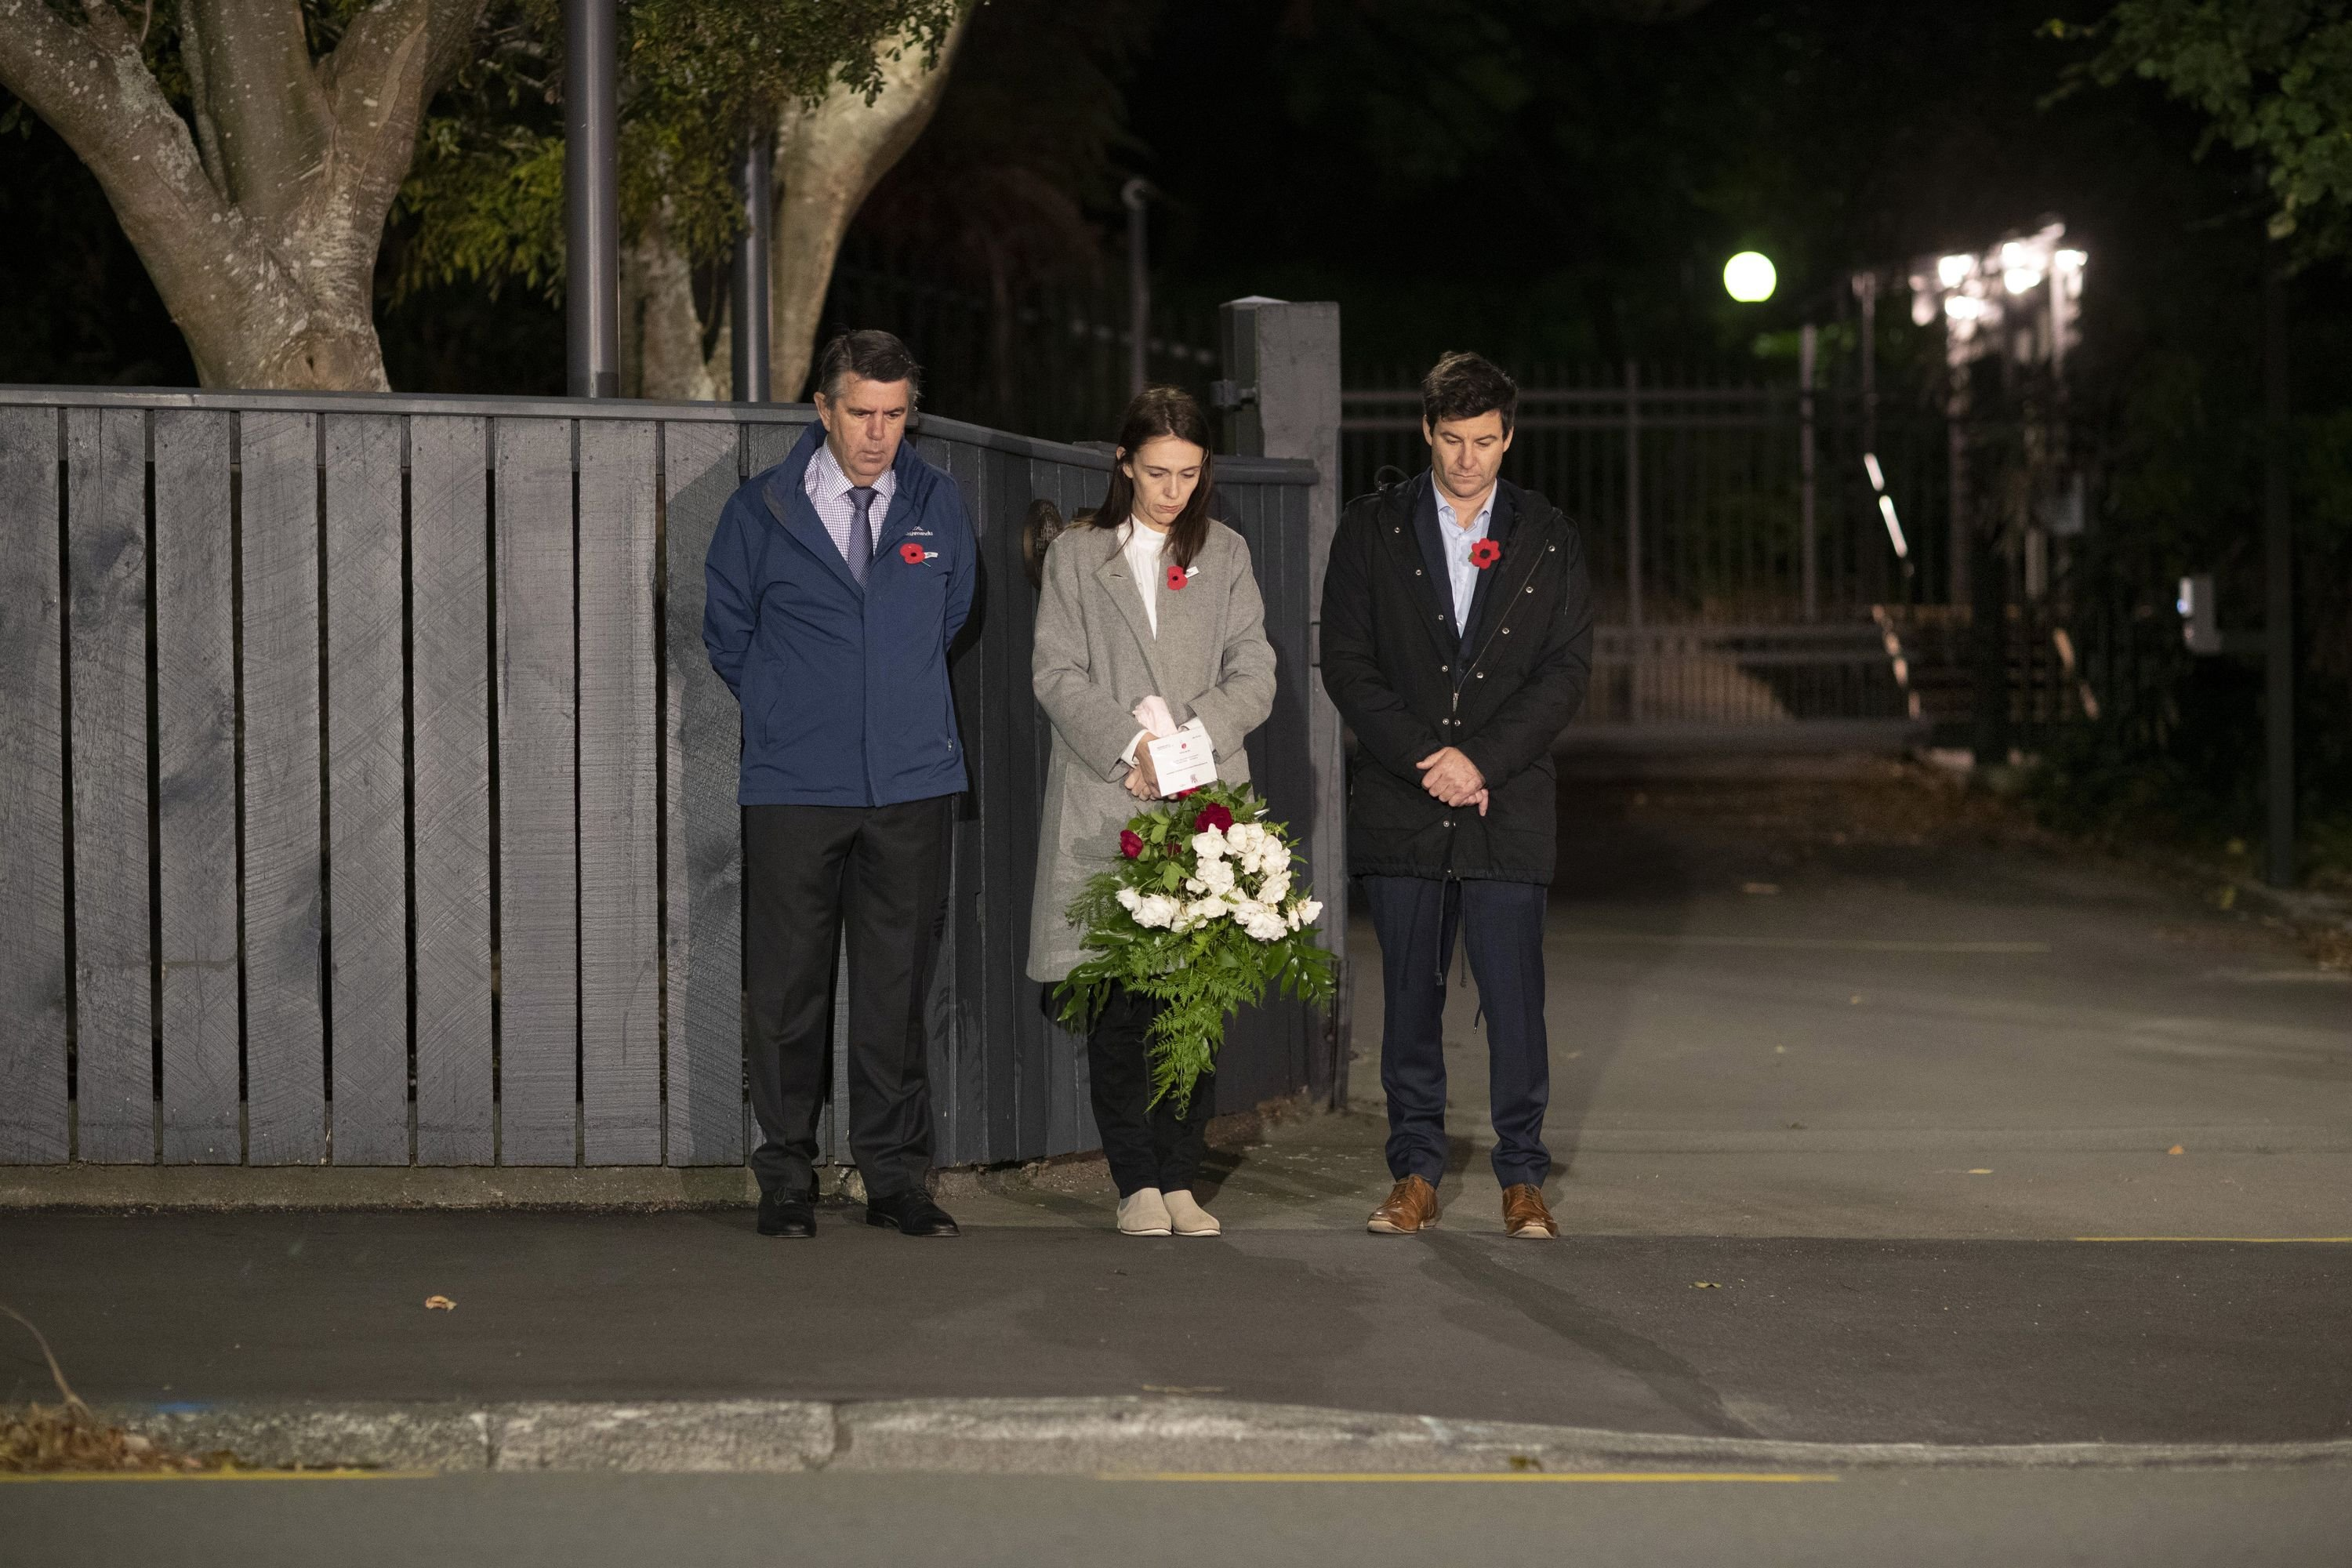 New Zealand Prime Minister Jacinda Ardern (C) with her father Ross Ardern (L) and partner Clarke Gayford stand in respect outside premier house in remembrance of ANZAC in Wellington on April 25, 2020. (AFP Photo)